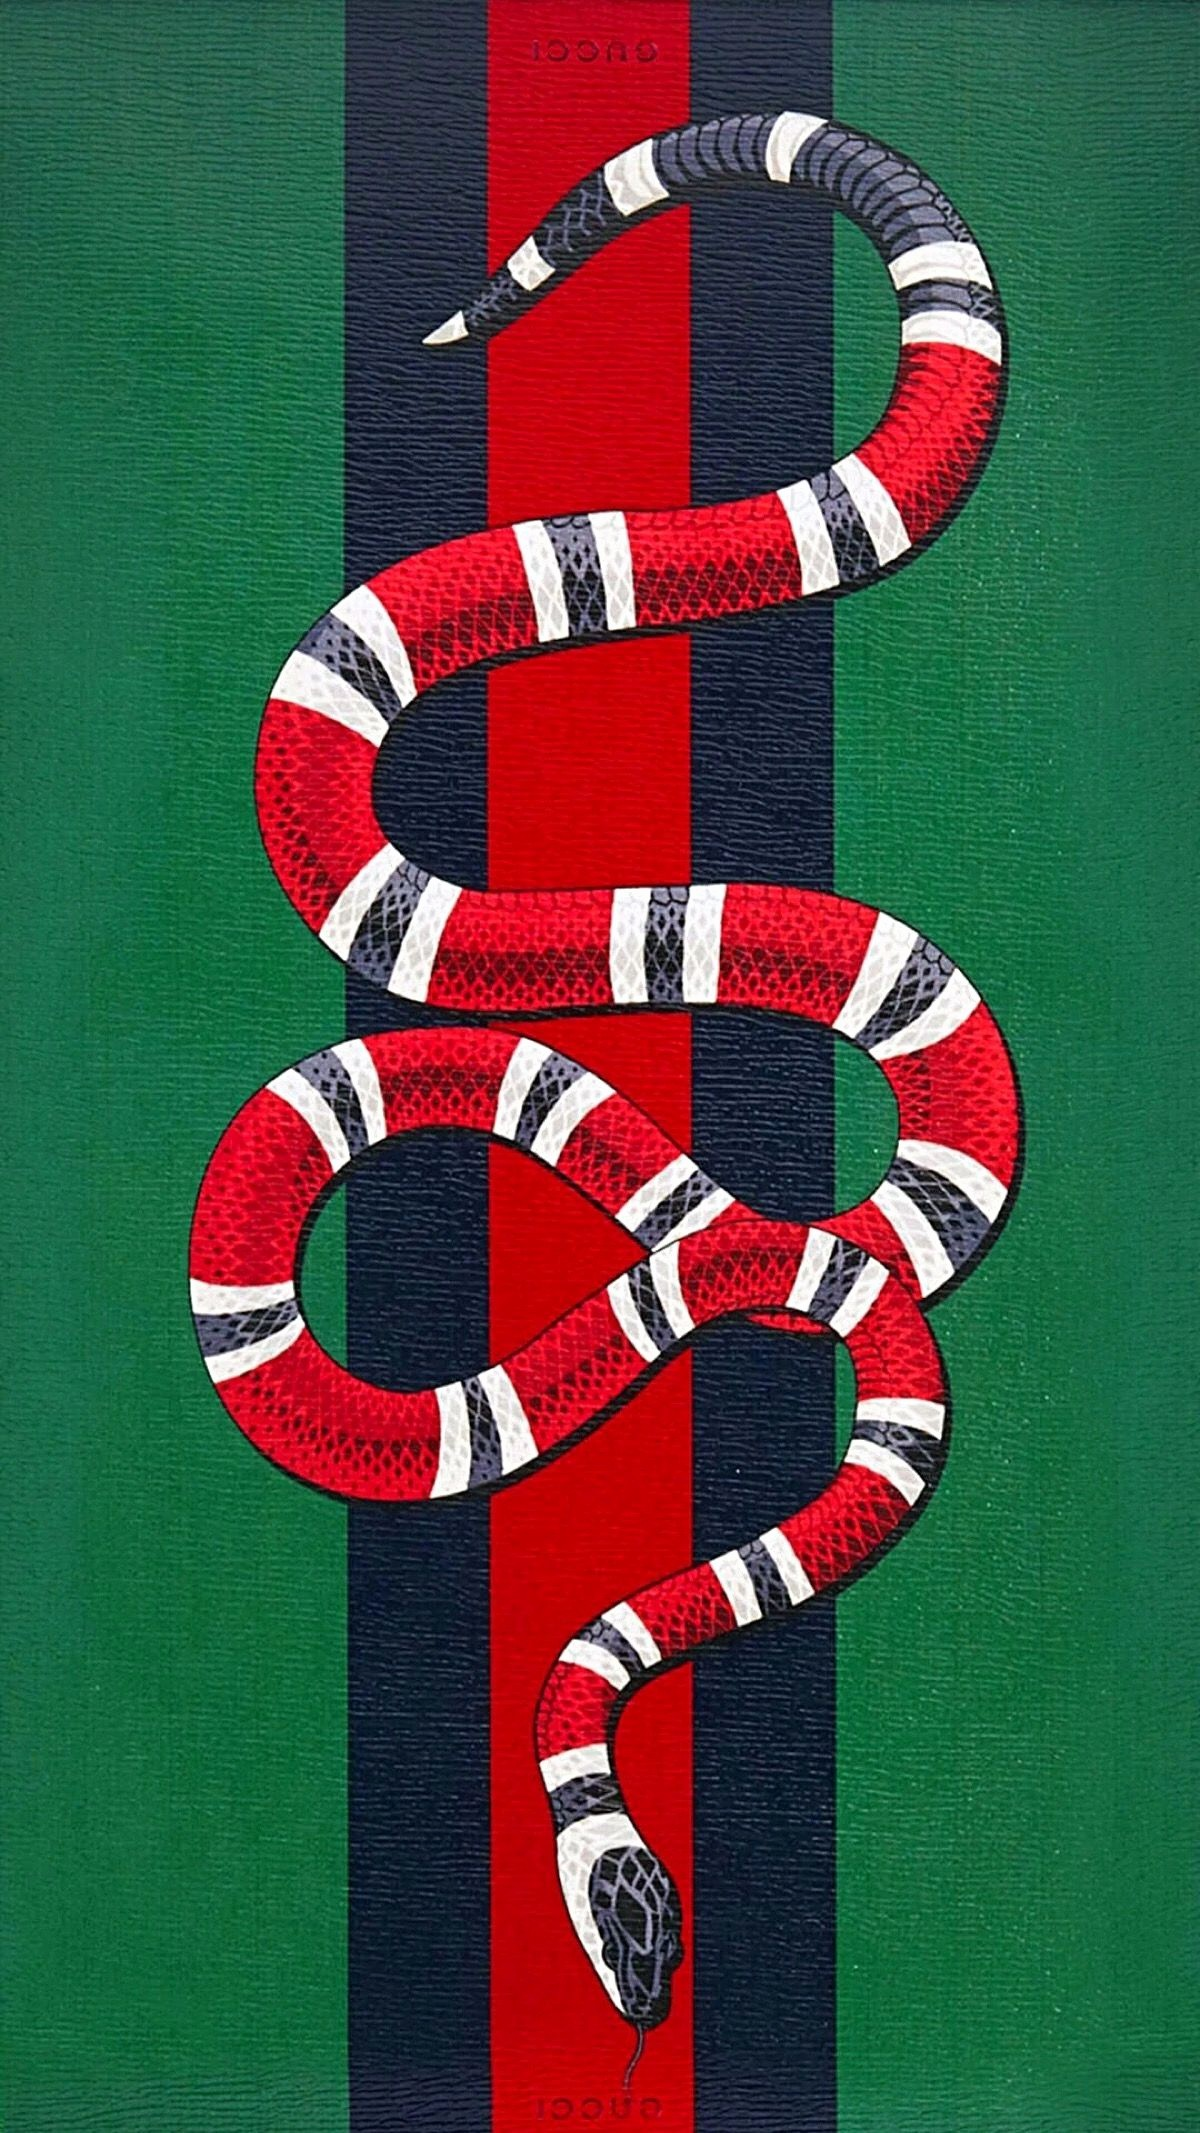 Gucci Wallpapers For Iphone X Bestpicture1 Org Source · Gucci Wallpapers 82 background pictures